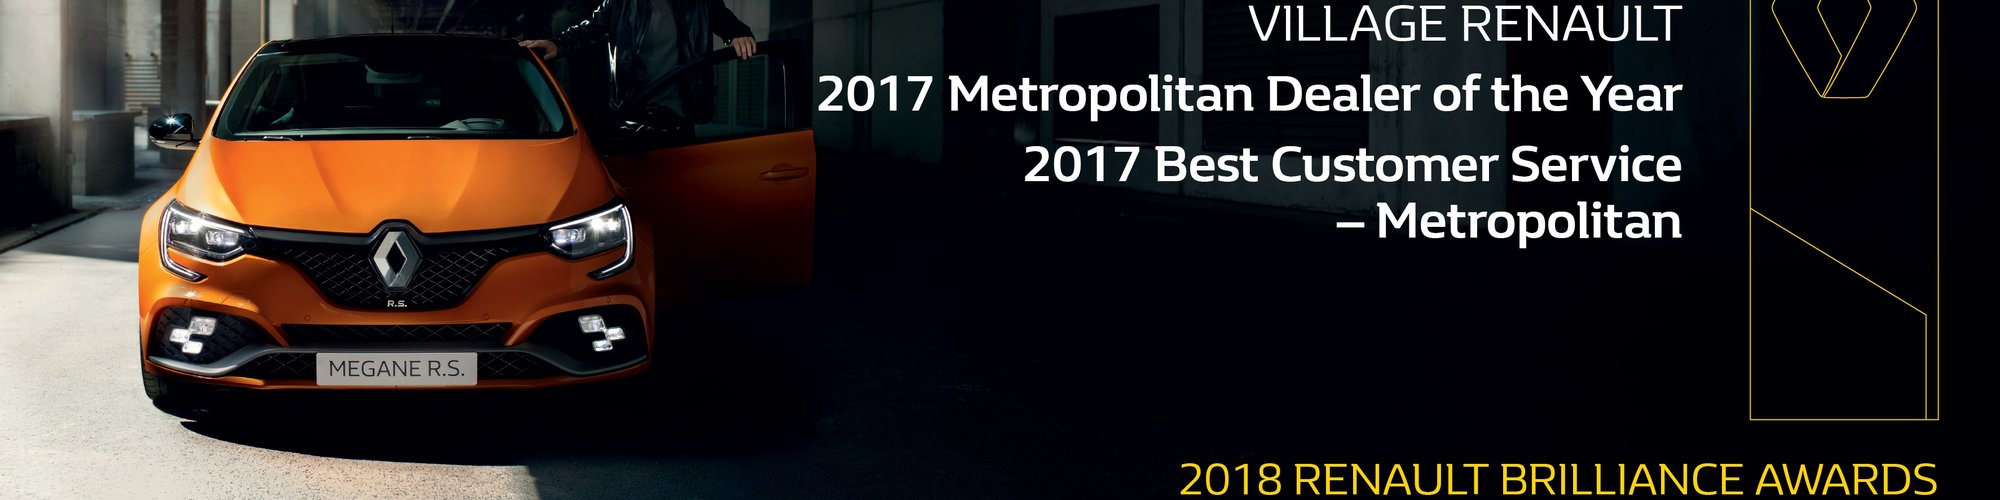 Village-Renault-Metro-Dealer-of-the-year-2017